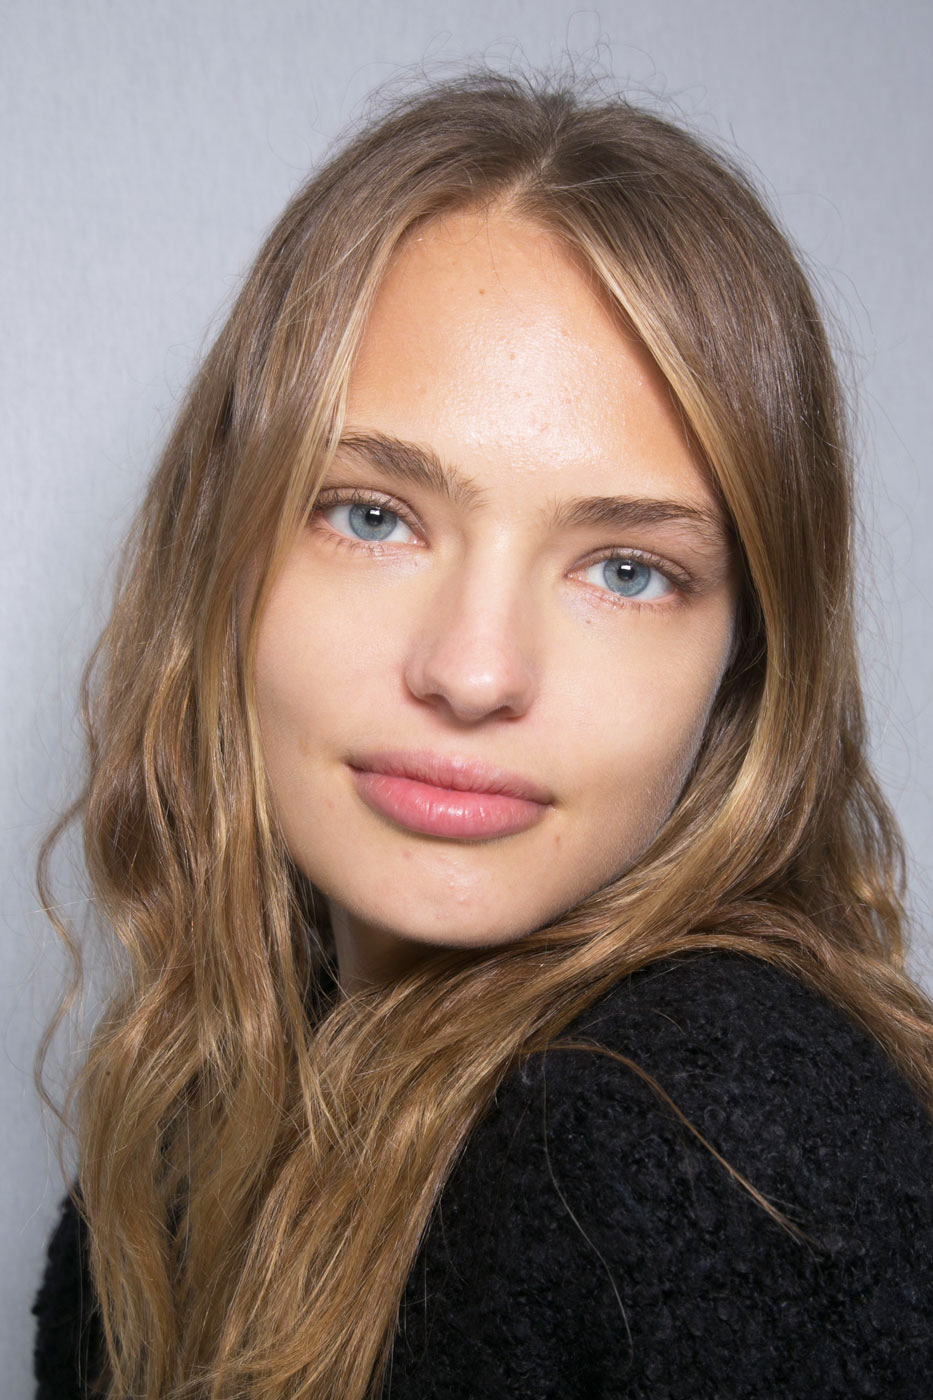 Silver Skin Care: The Metal That Can Actually Improve Skin